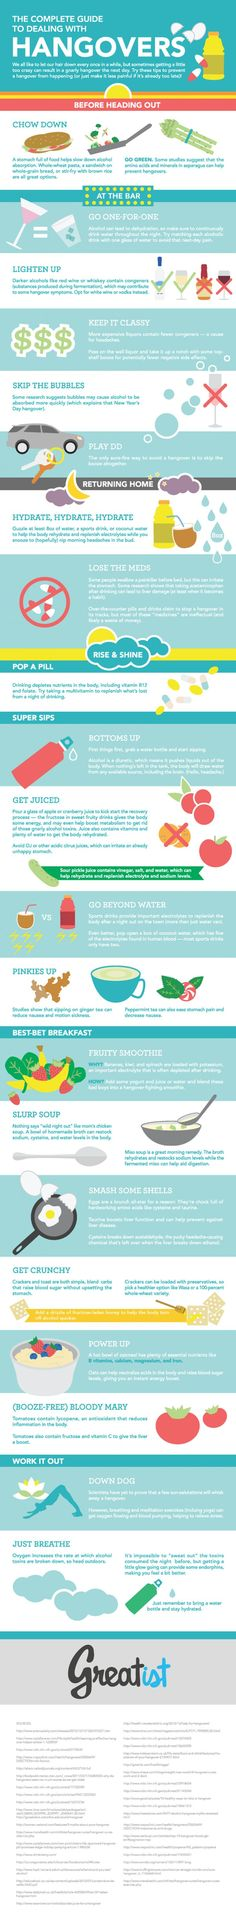 A great list of hangover cures. Hopefully we won't be needing this anytime soon...